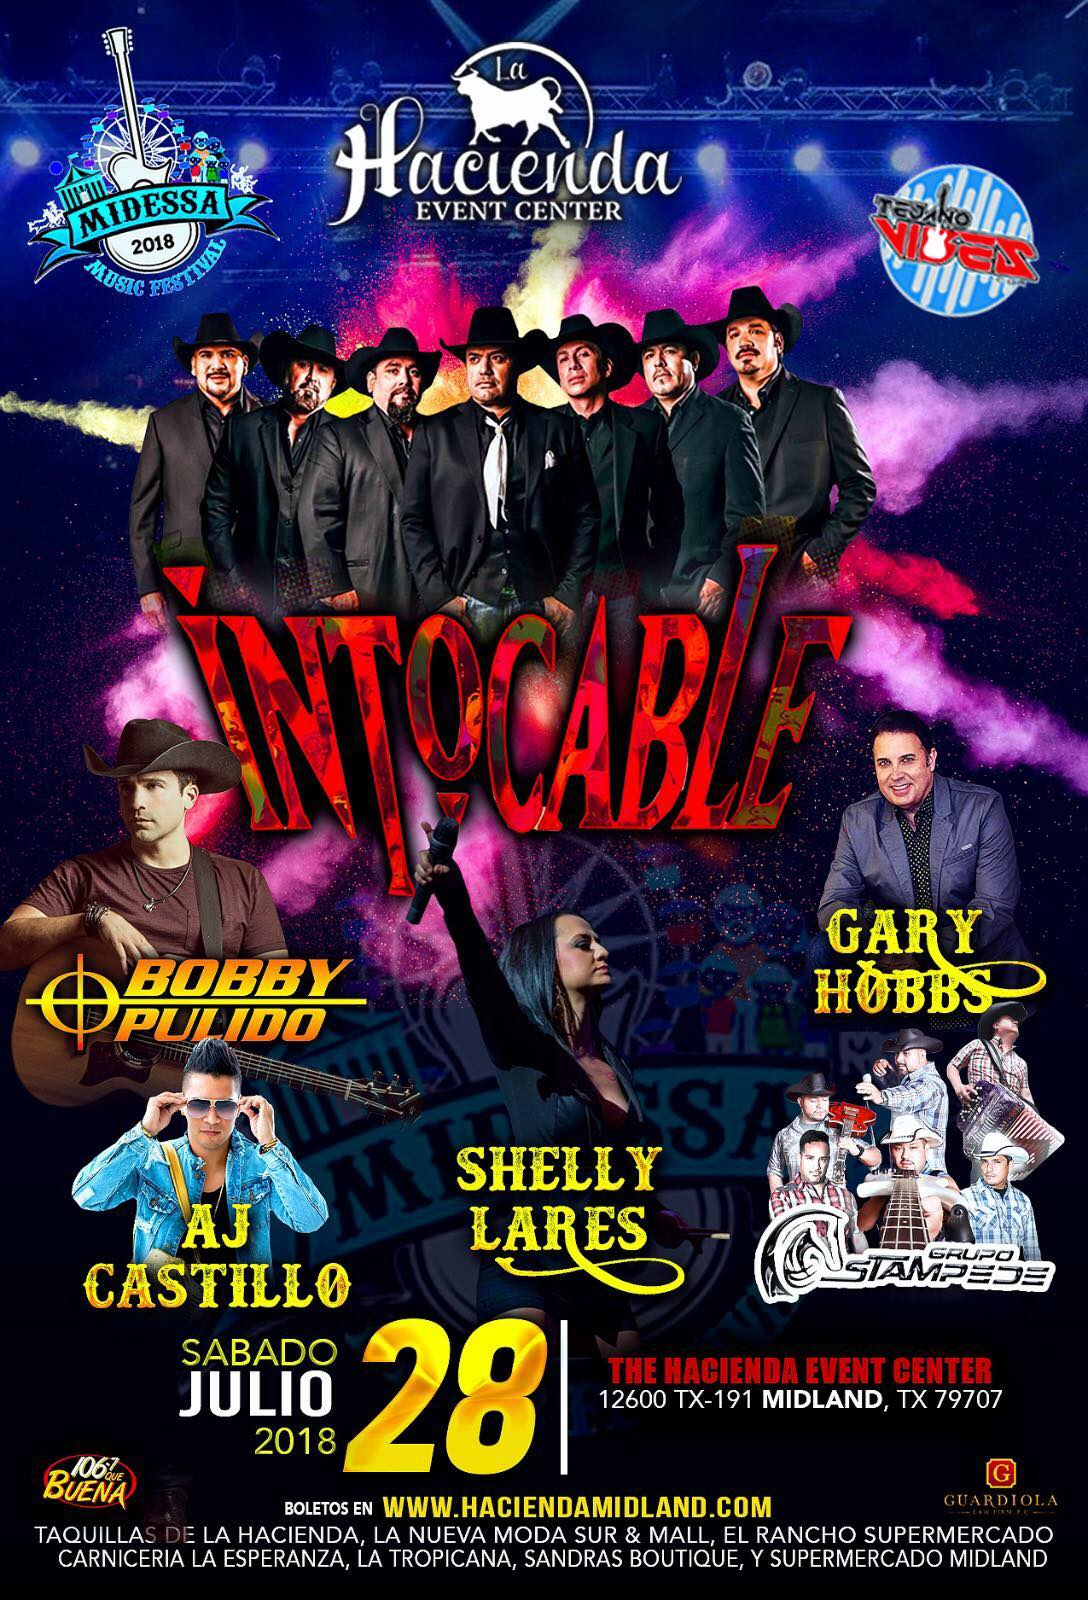 Image for INTOCABLE, BOBBY PULIDO, AJ CASTILLO, GARRY HOBBS